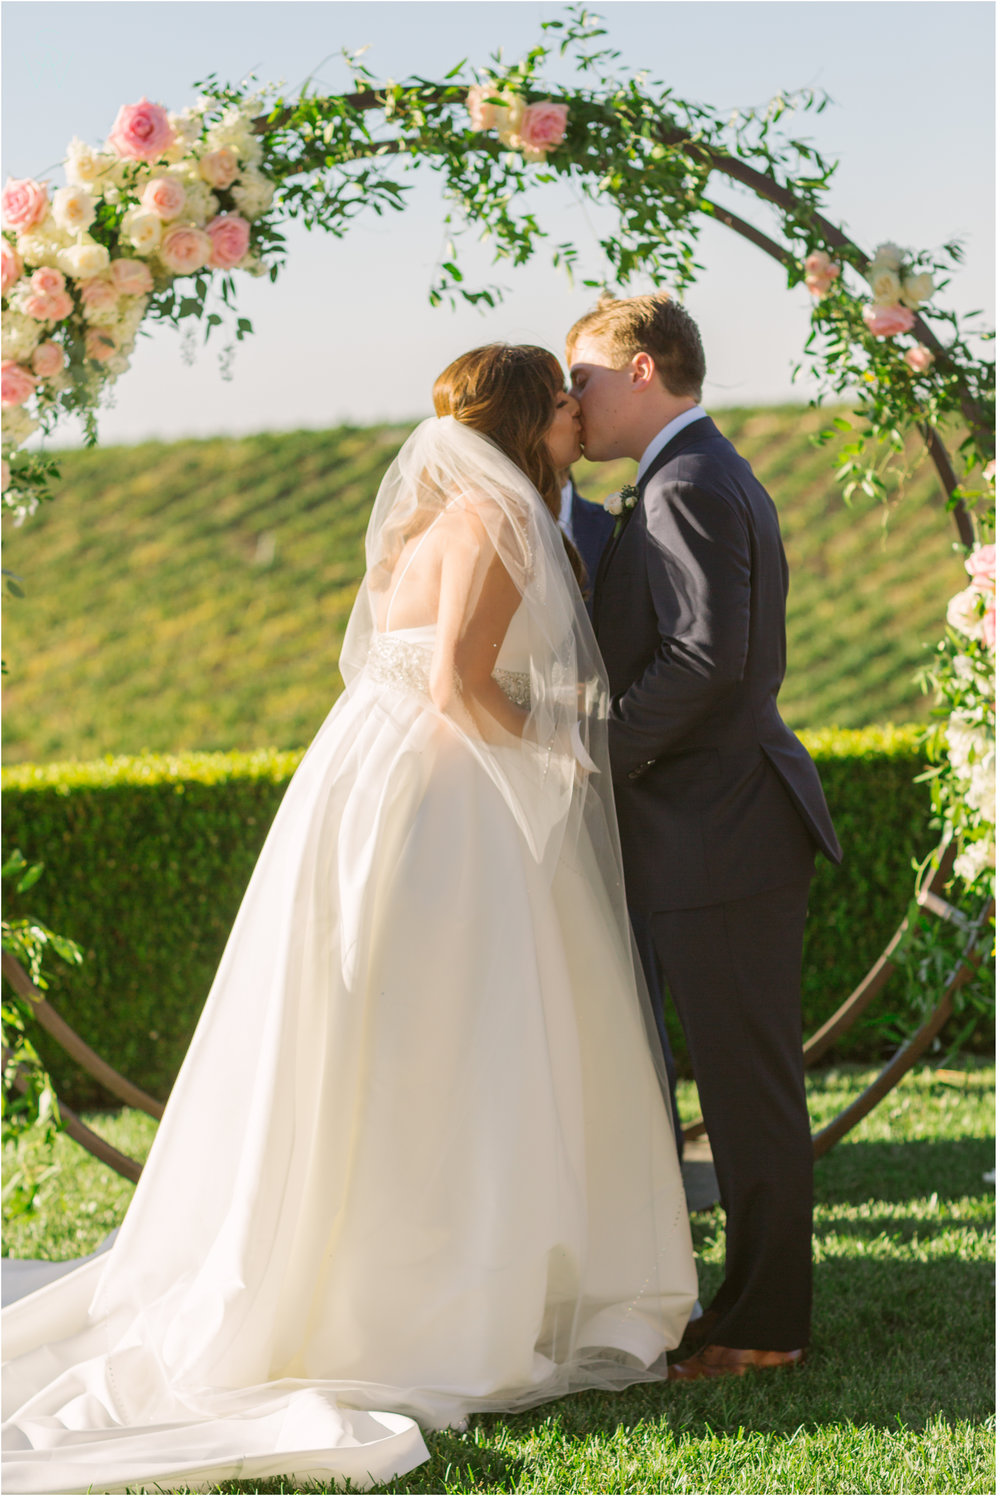 149CALLAWAY.VINEYARD.AND.WINERY.CeremonyKiss.wedding.photography.shewanders.JPG